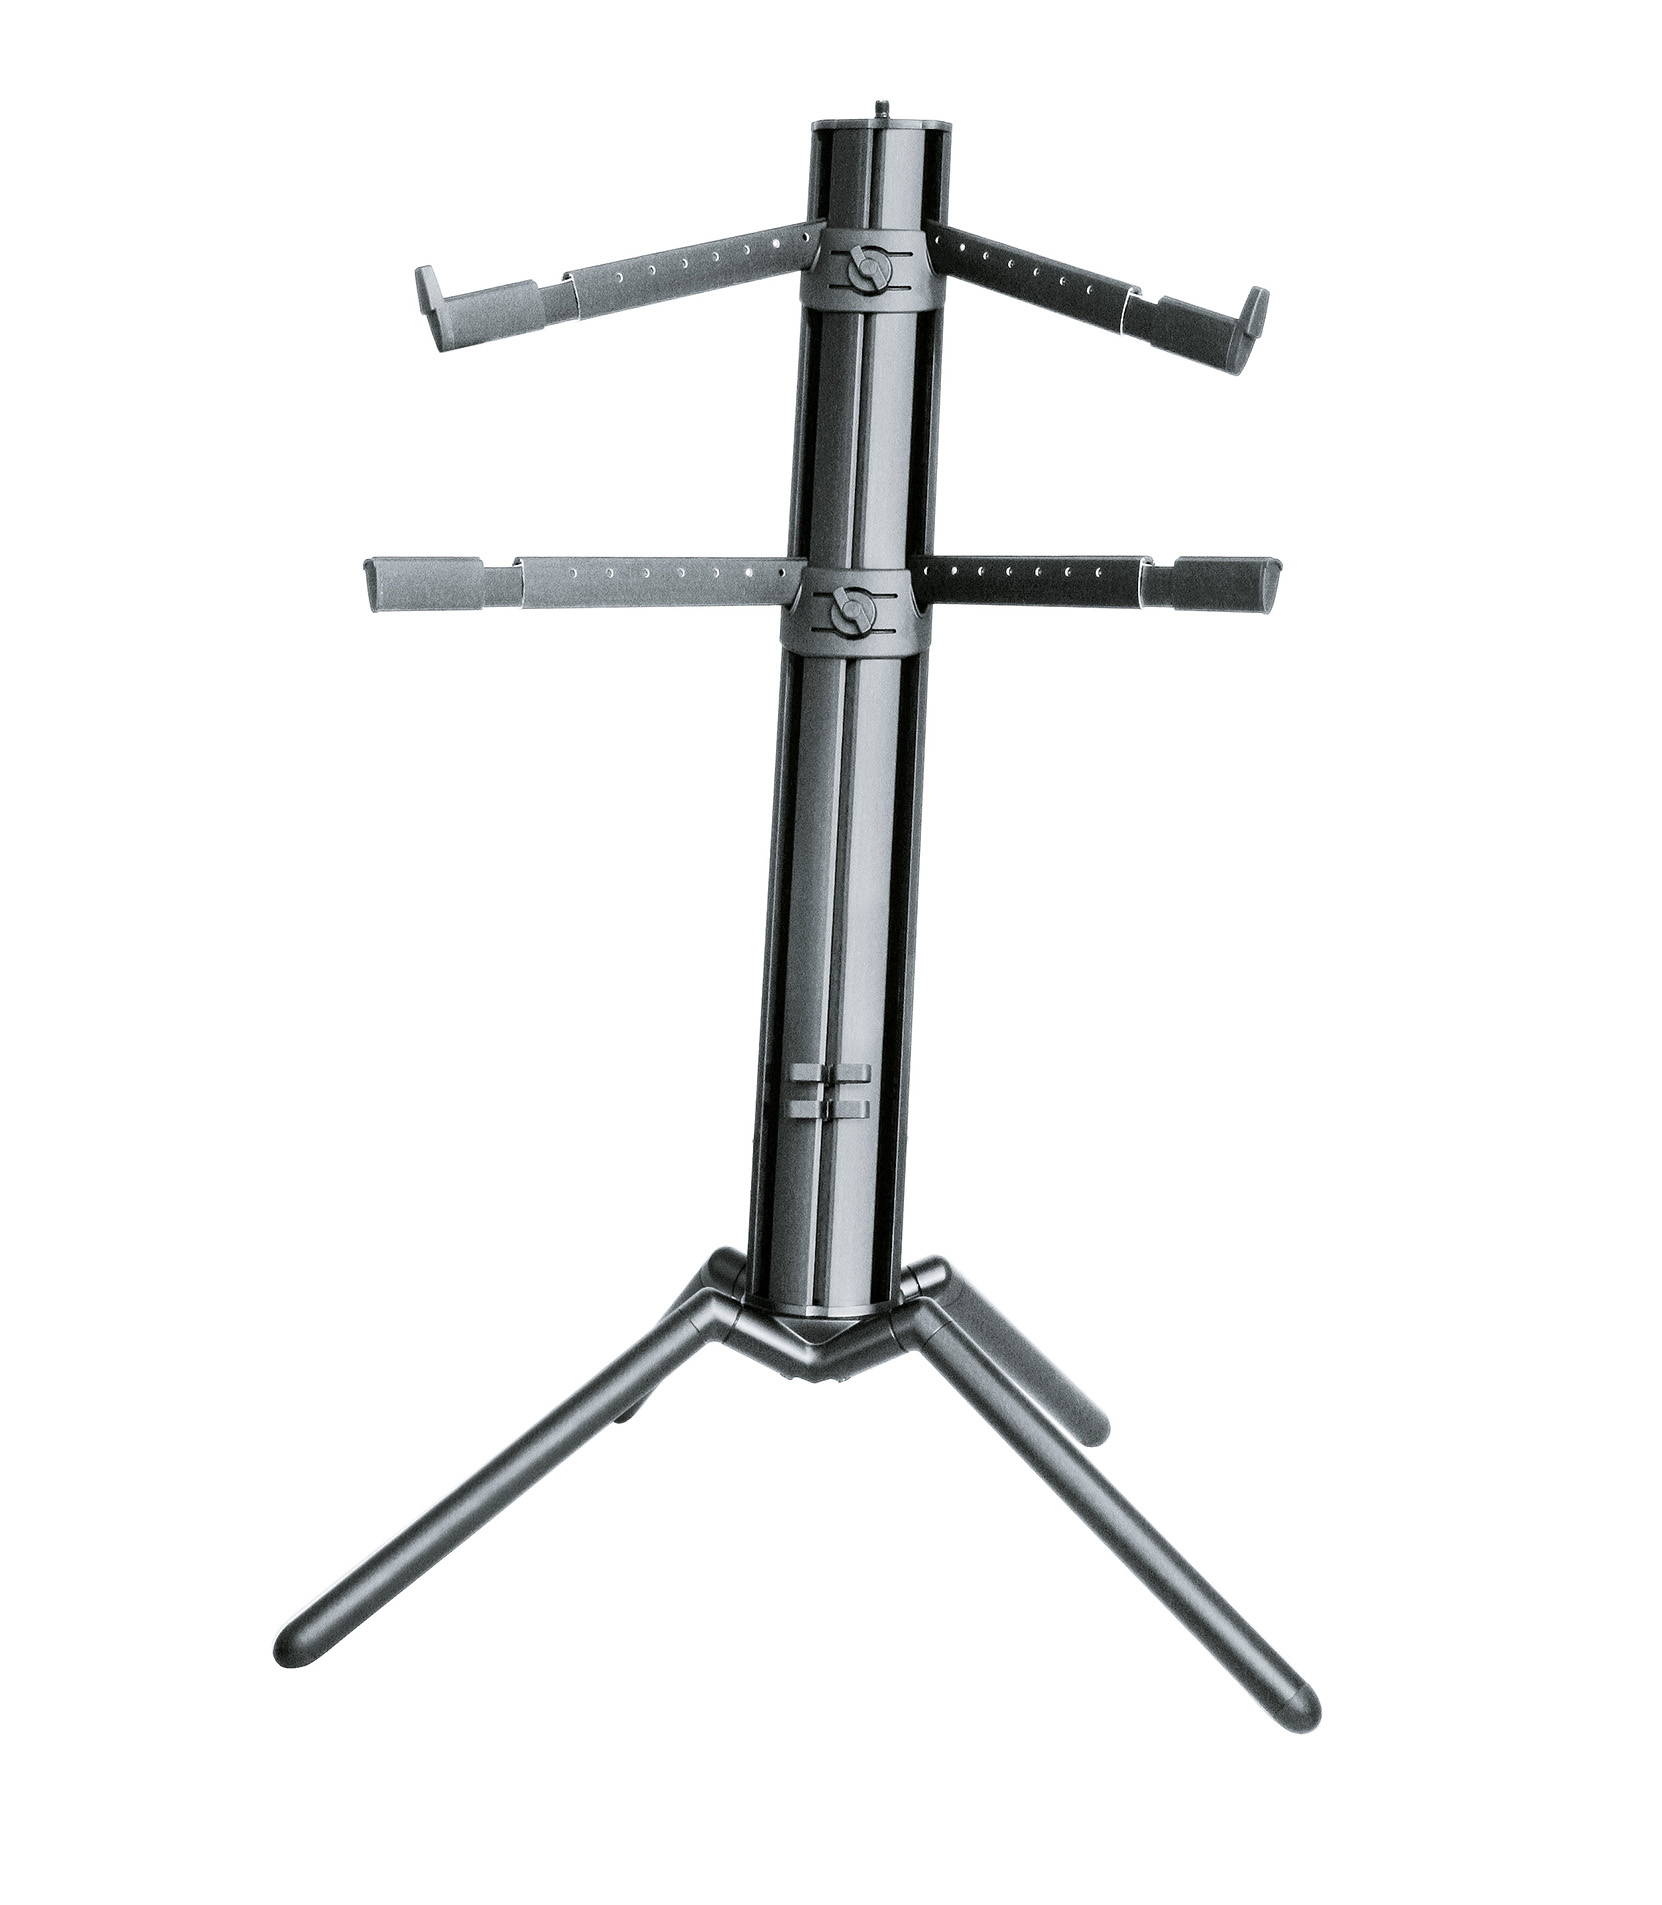 Buy K&M - 18860 000 35 Keyboard stand Spider Problack